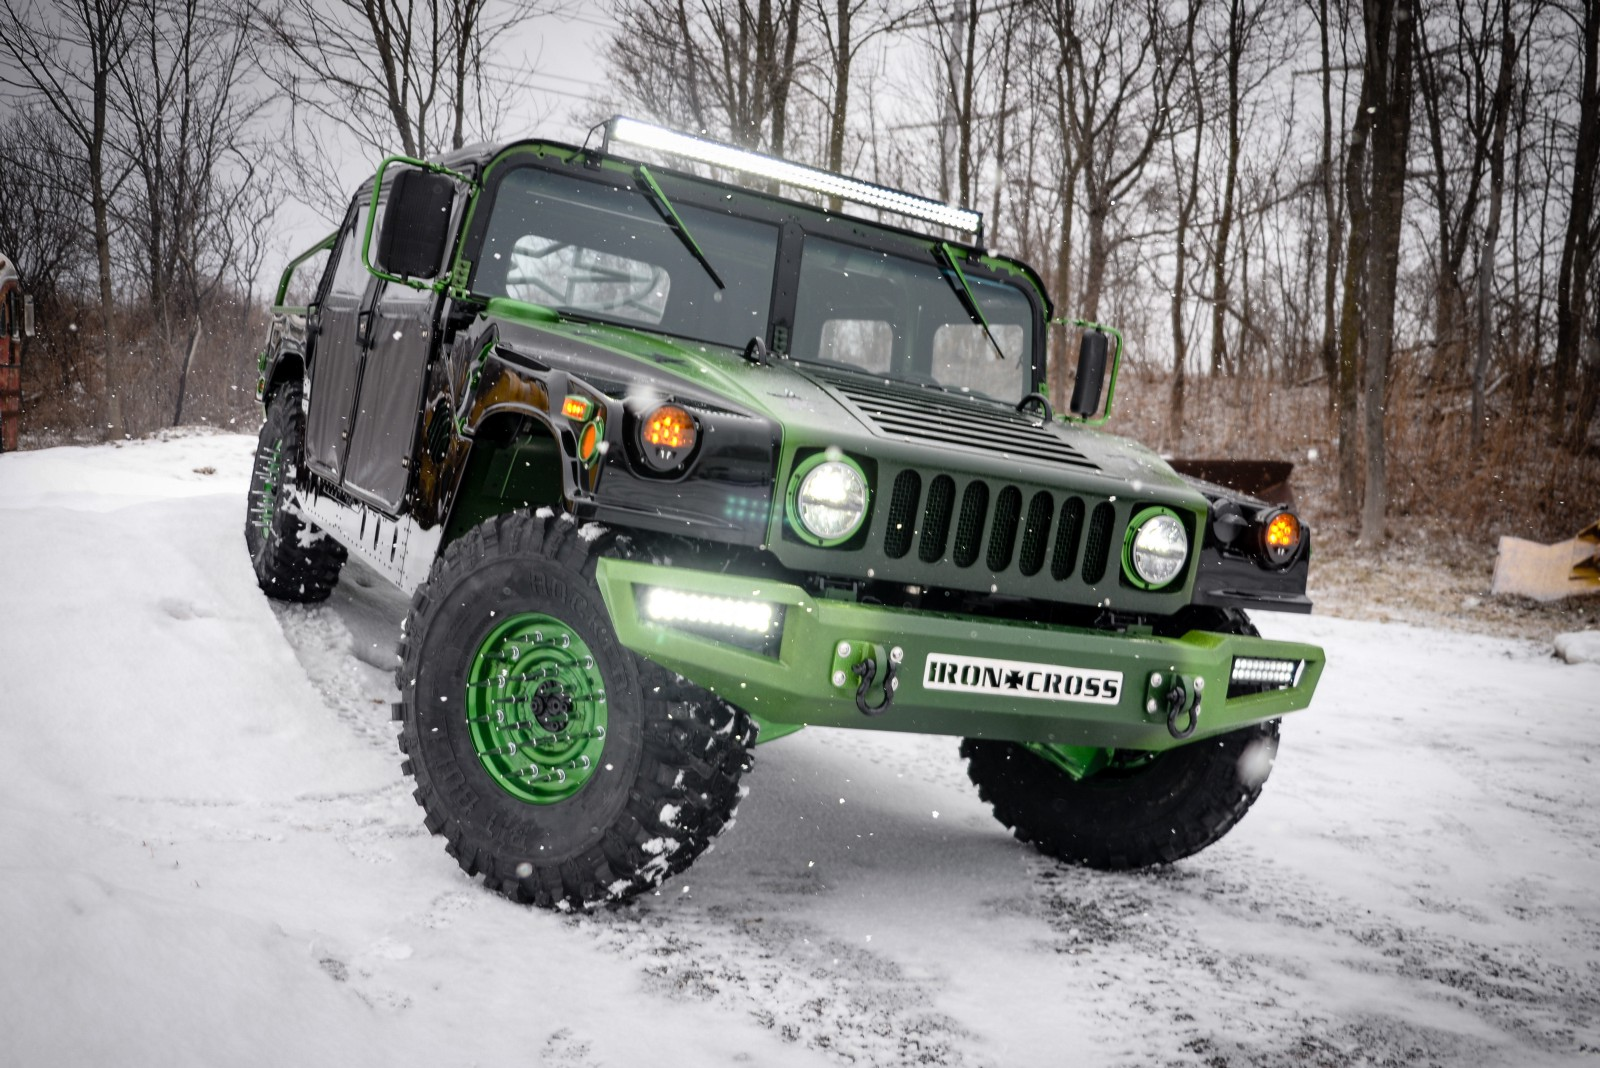 Saratoga Automobile Museum To Display Charity Humvee In Support Of - Saratoga auto museum car show